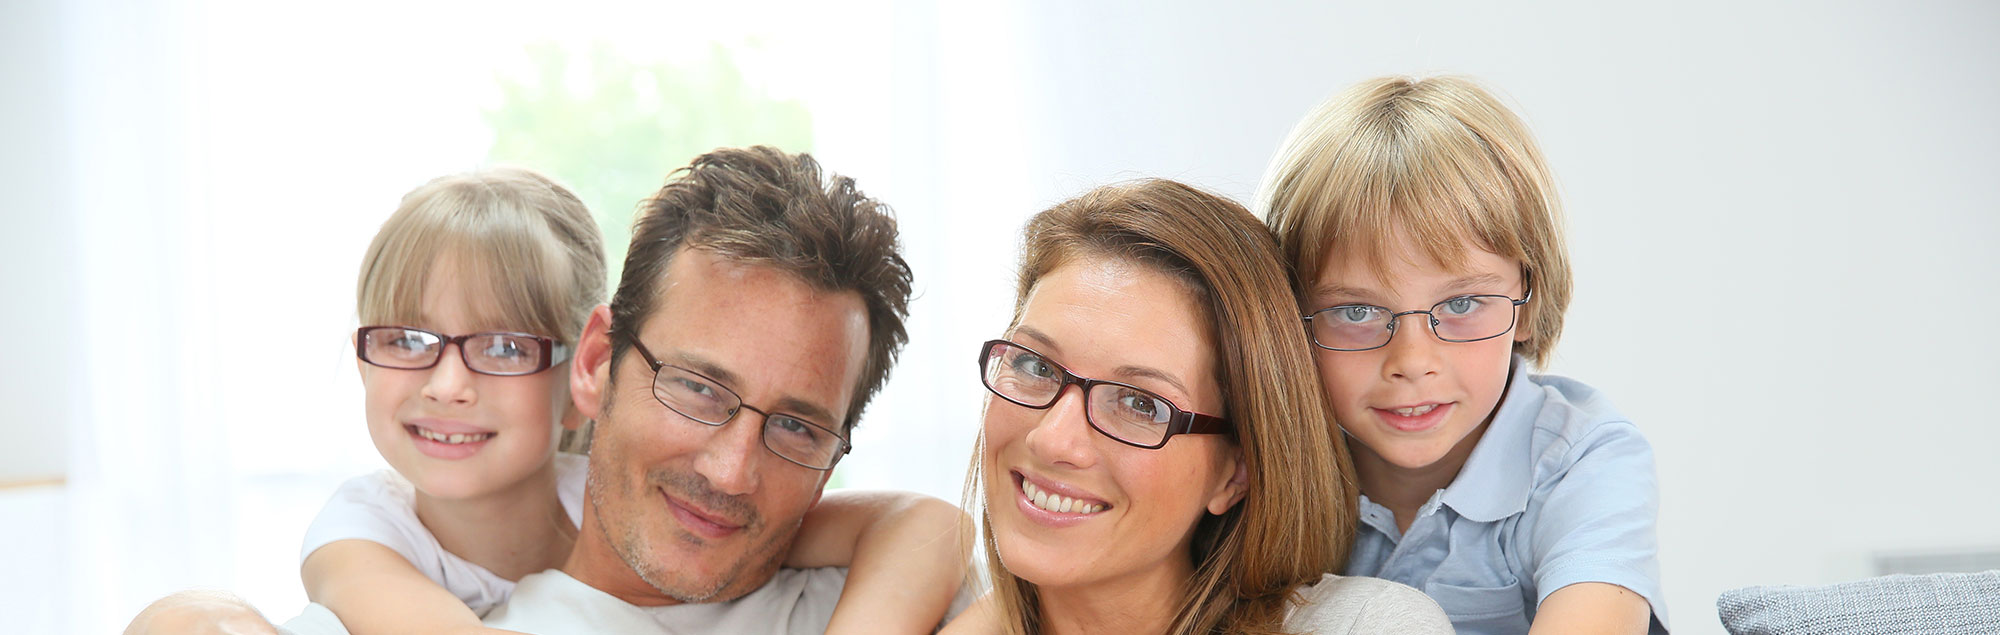 family wearing glasses